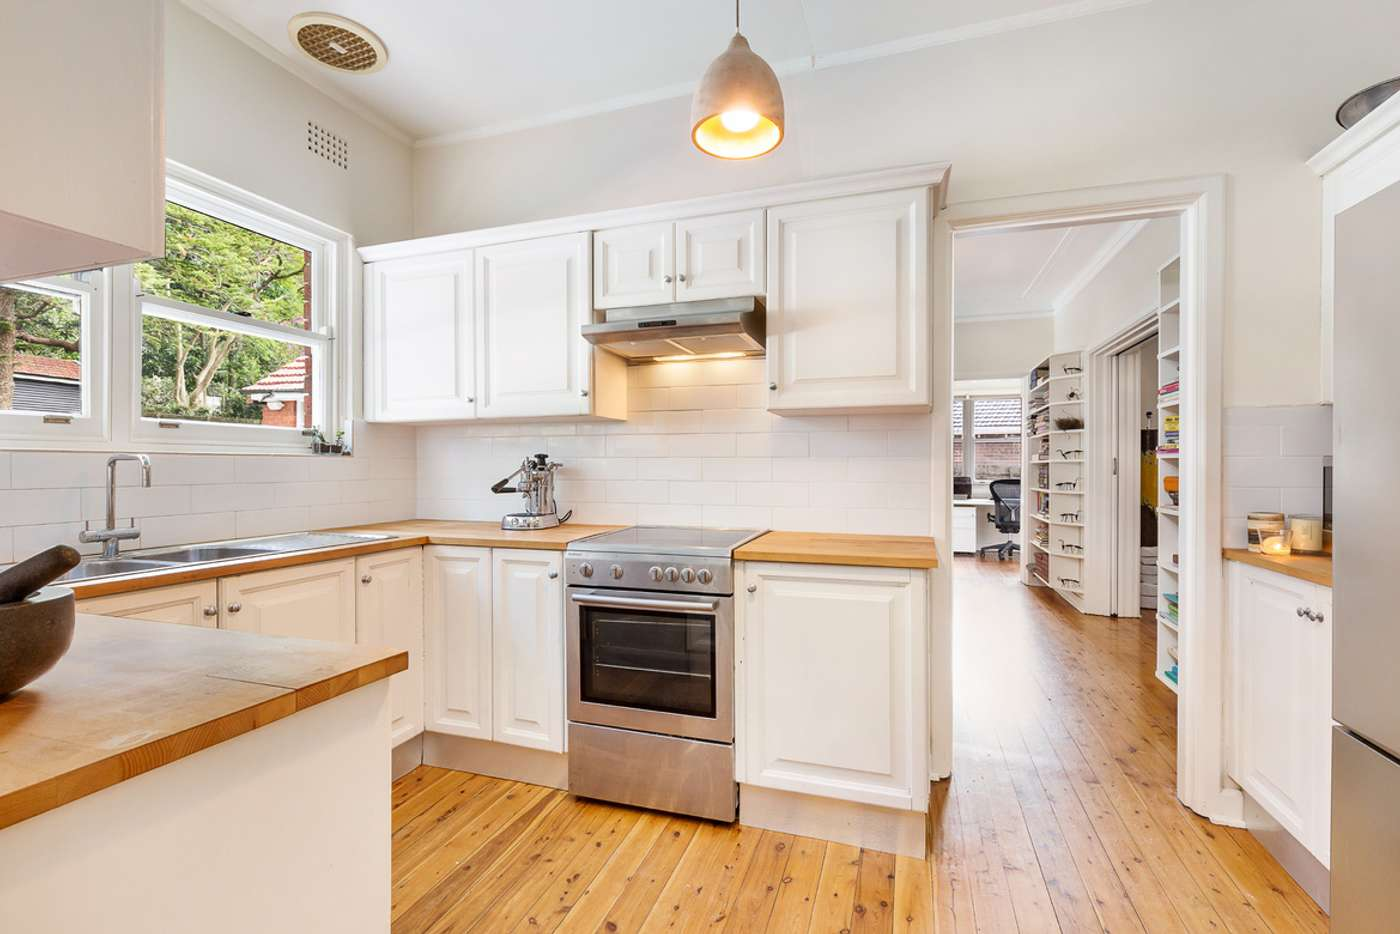 Fifth view of Homely house listing, 27 Burns Road, Wahroonga NSW 2076